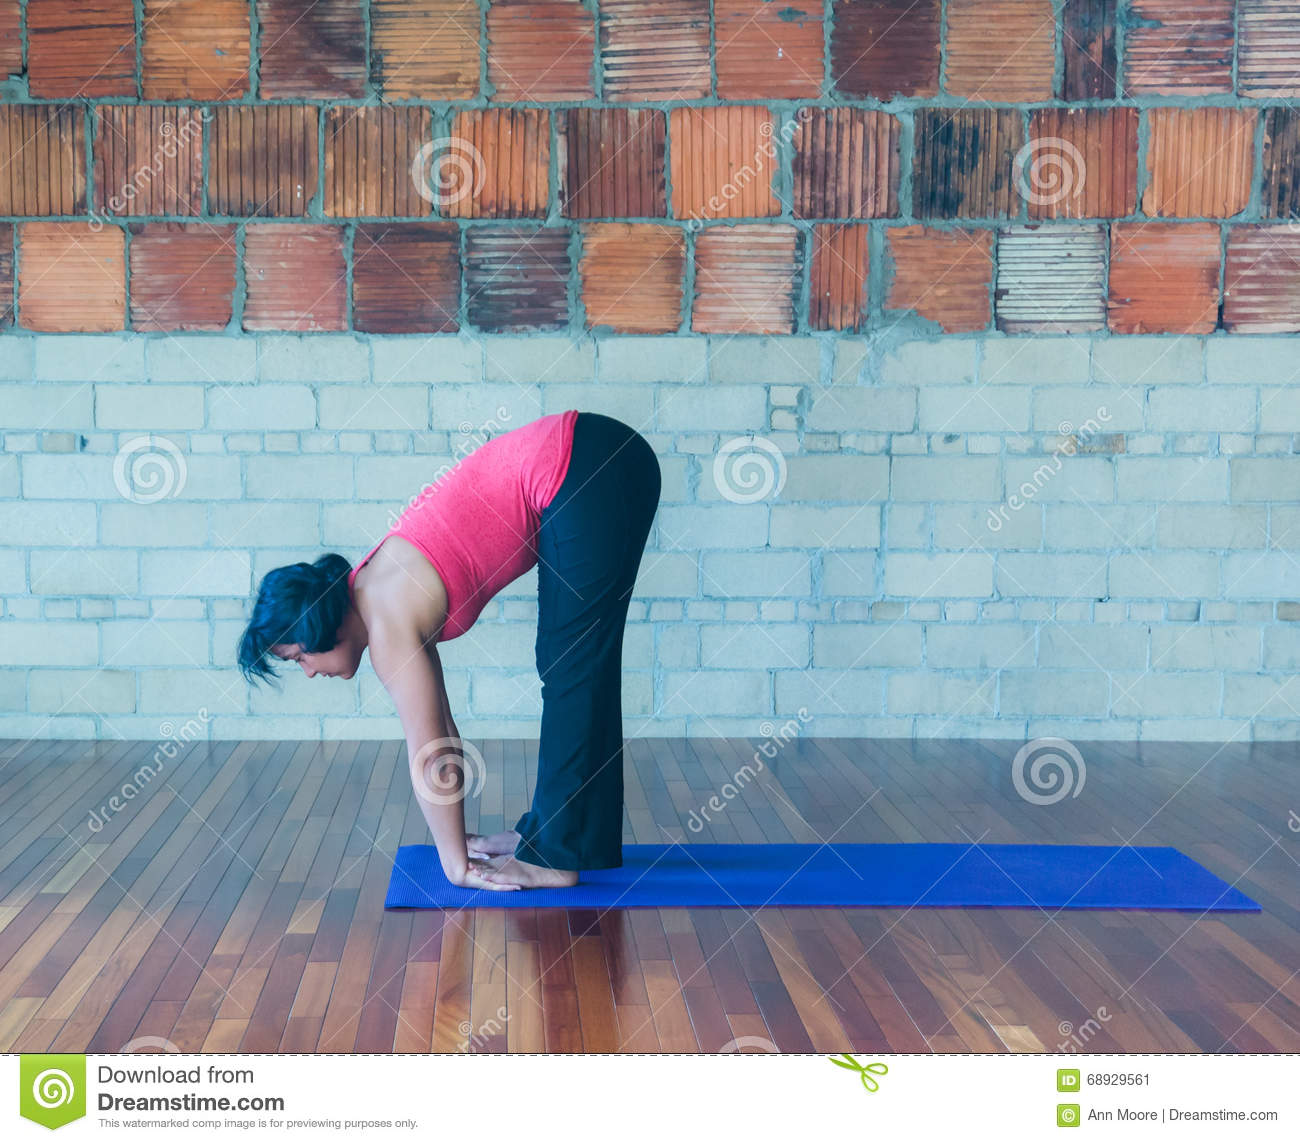 Yoga hand under foot pose